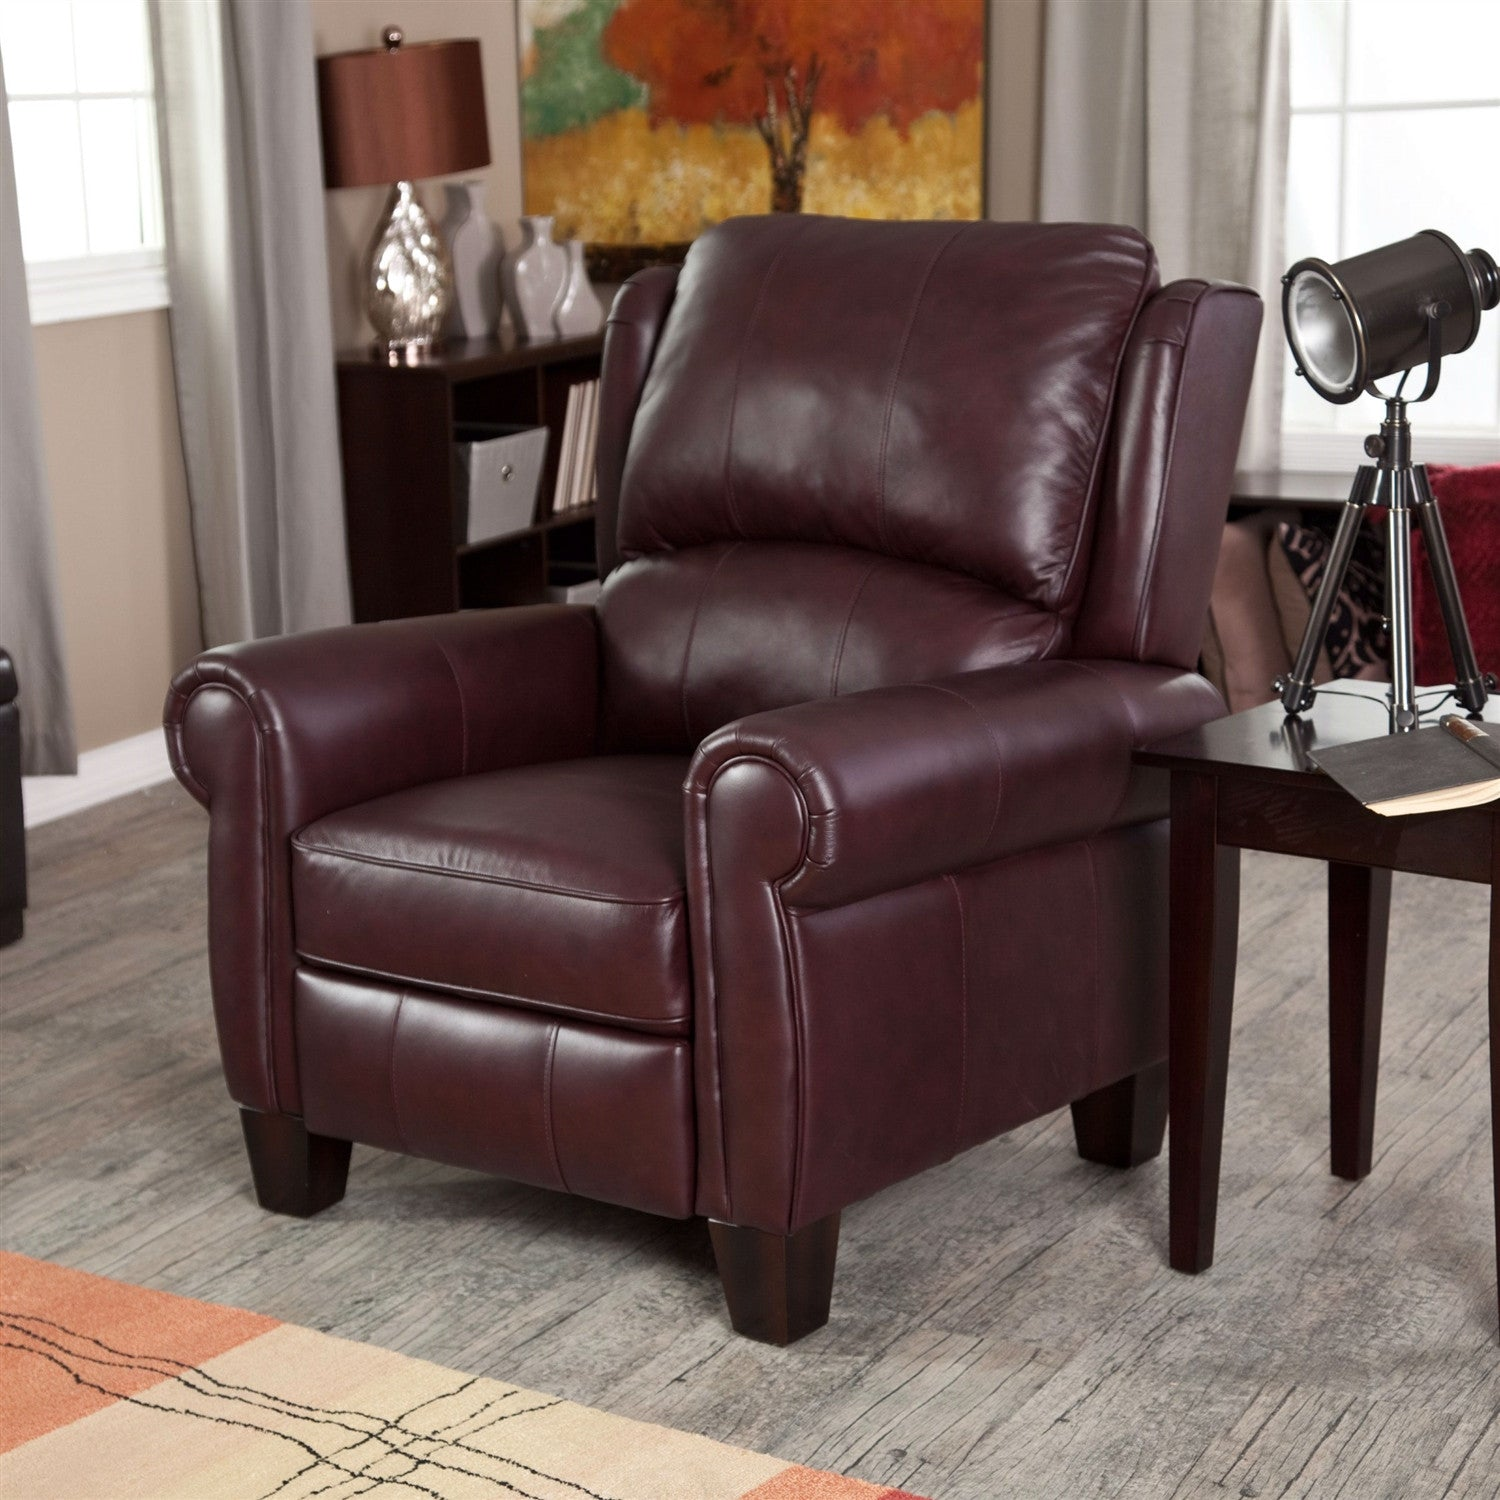 Recliners and Leather Recliner